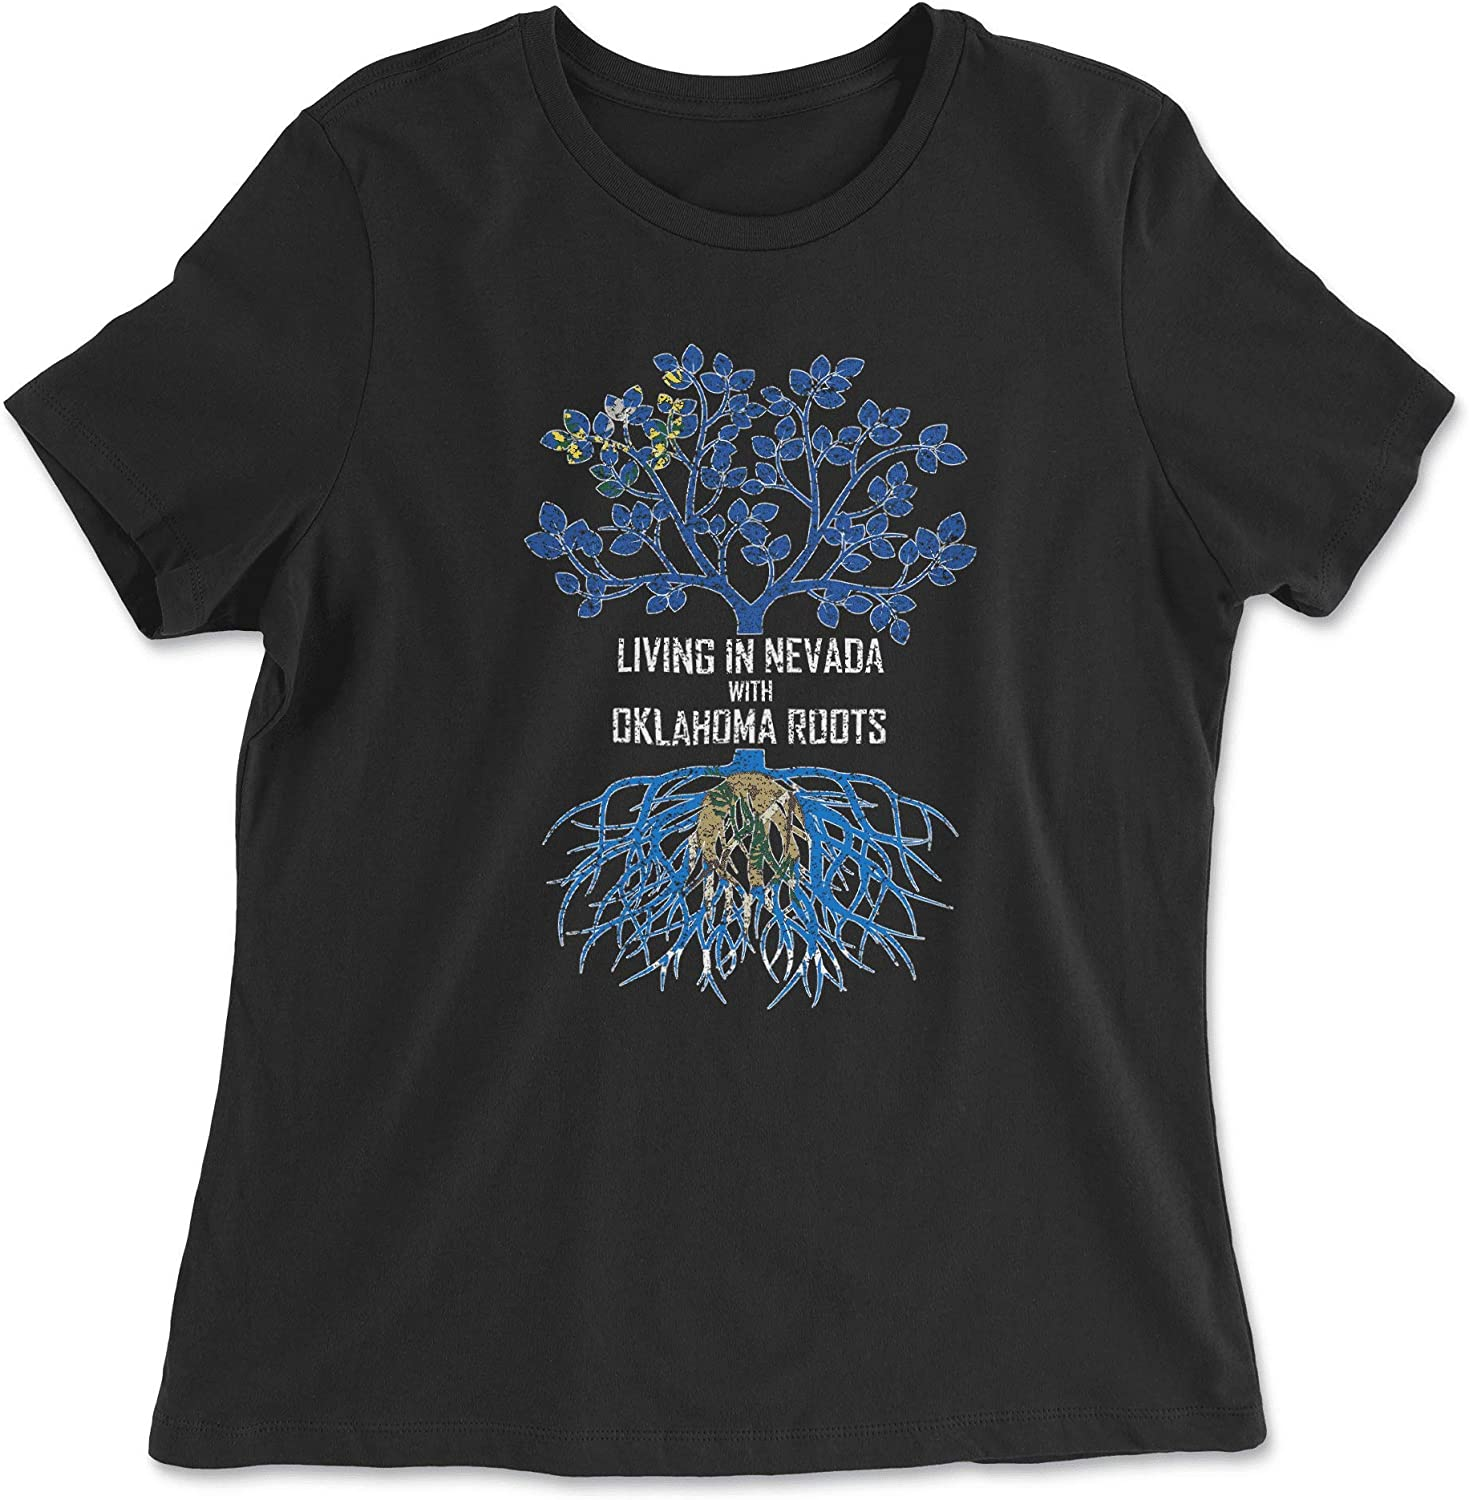 HARD EDGE DESIGN Women's Living in Nevada with Oklahoma Roots T-Shirt